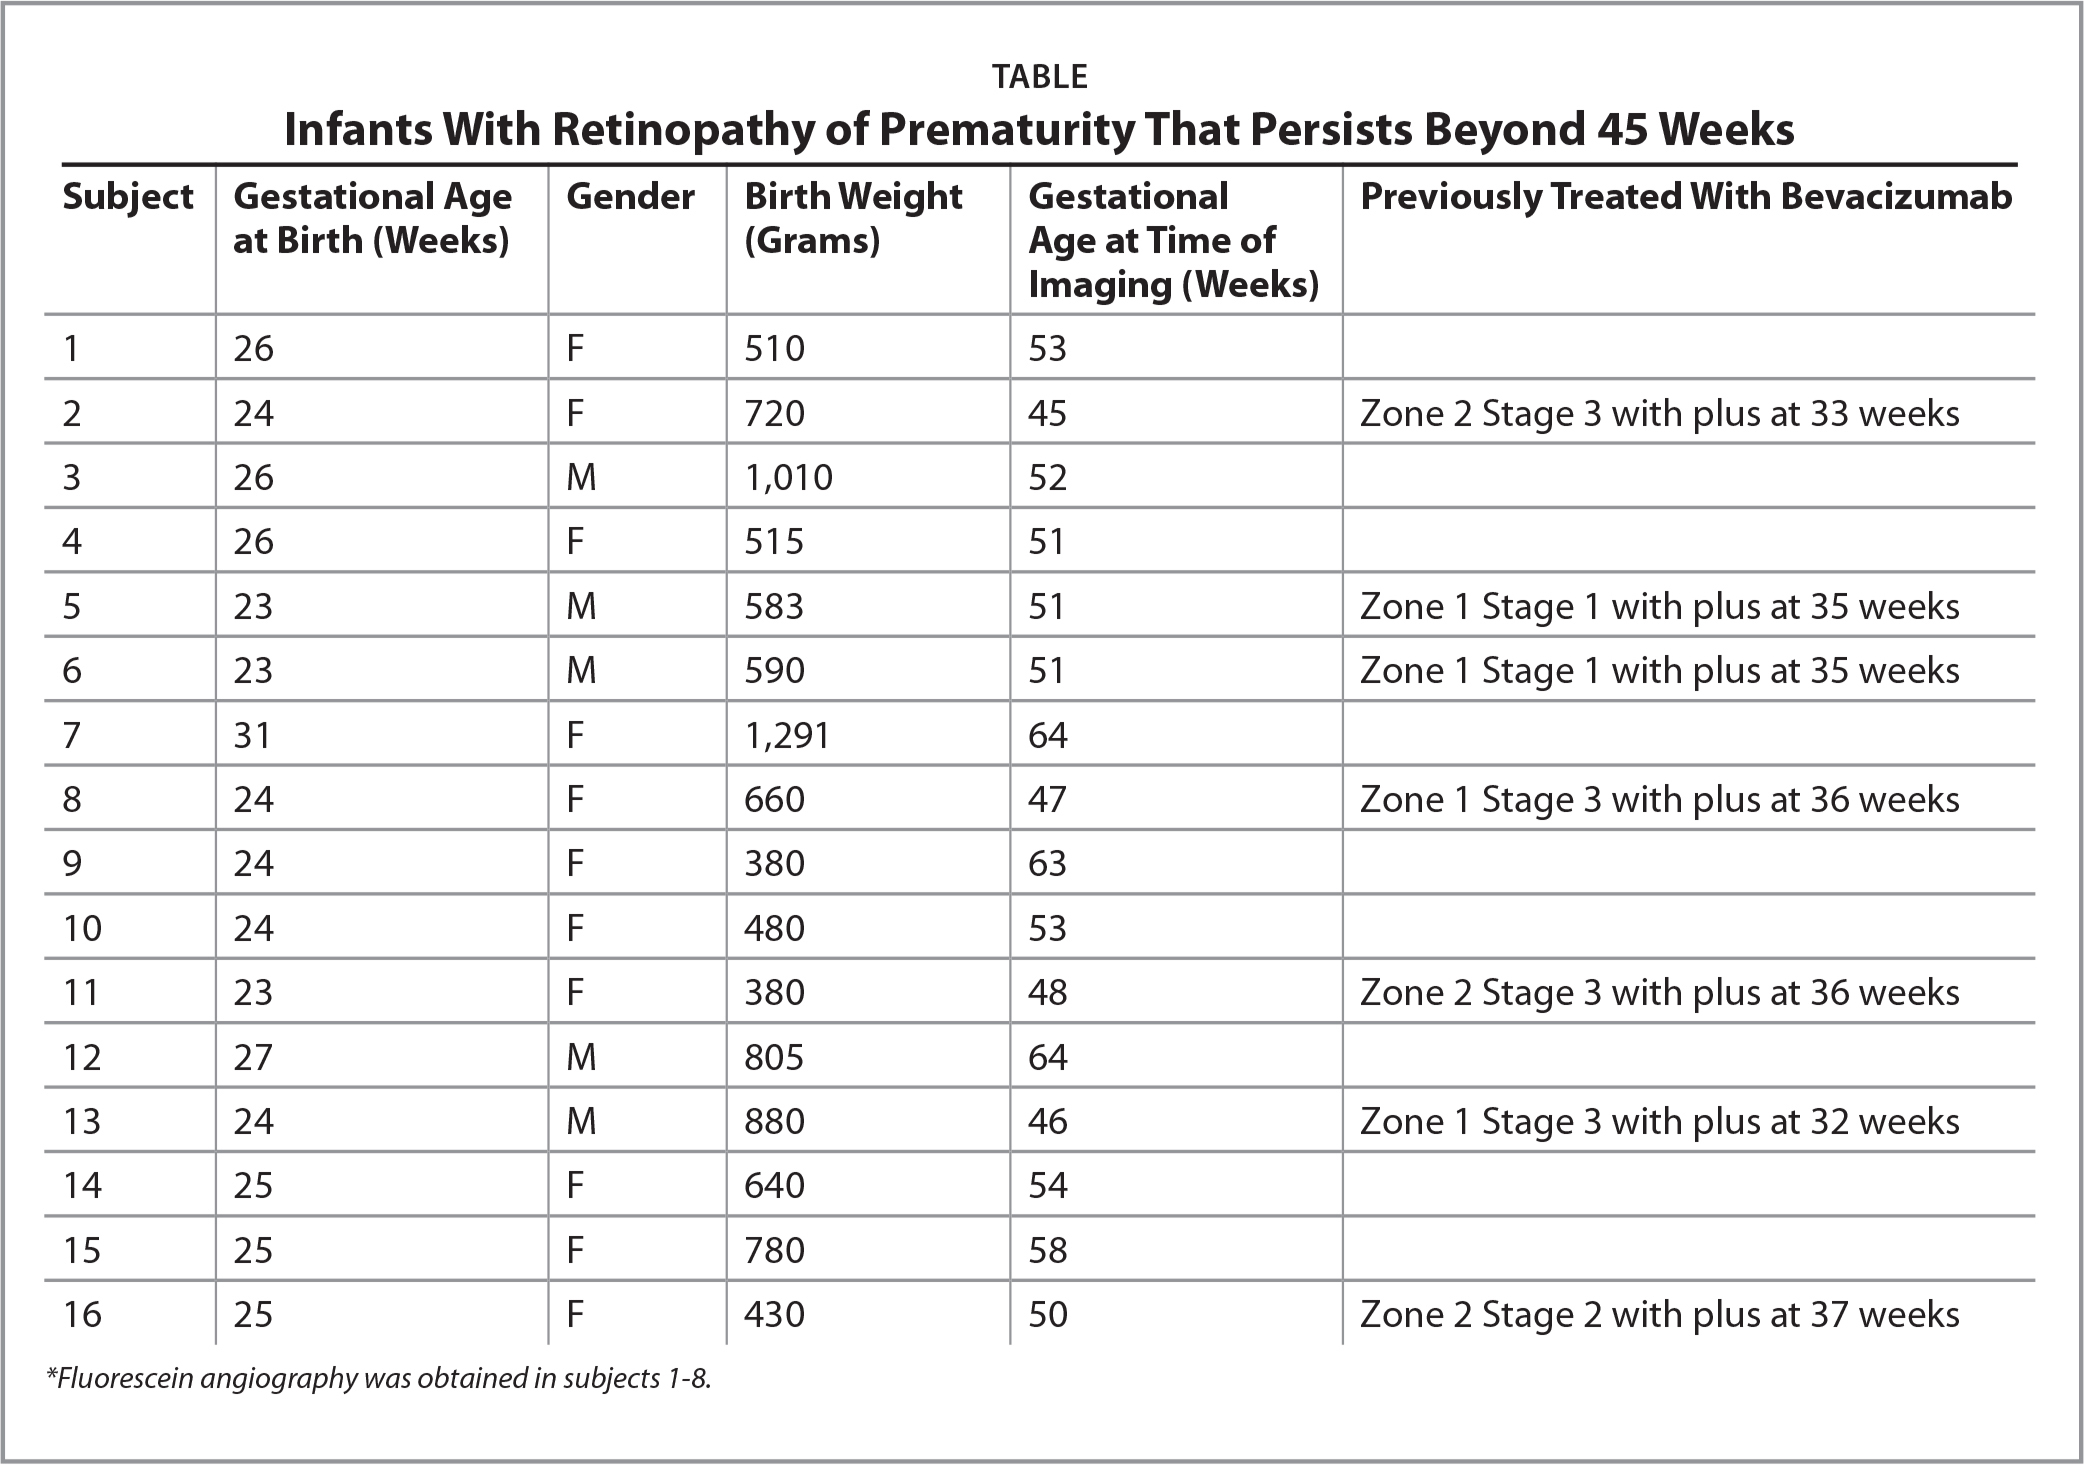 Infants With Retinopathy of Prematurity That Persists Beyond 45 Weeks